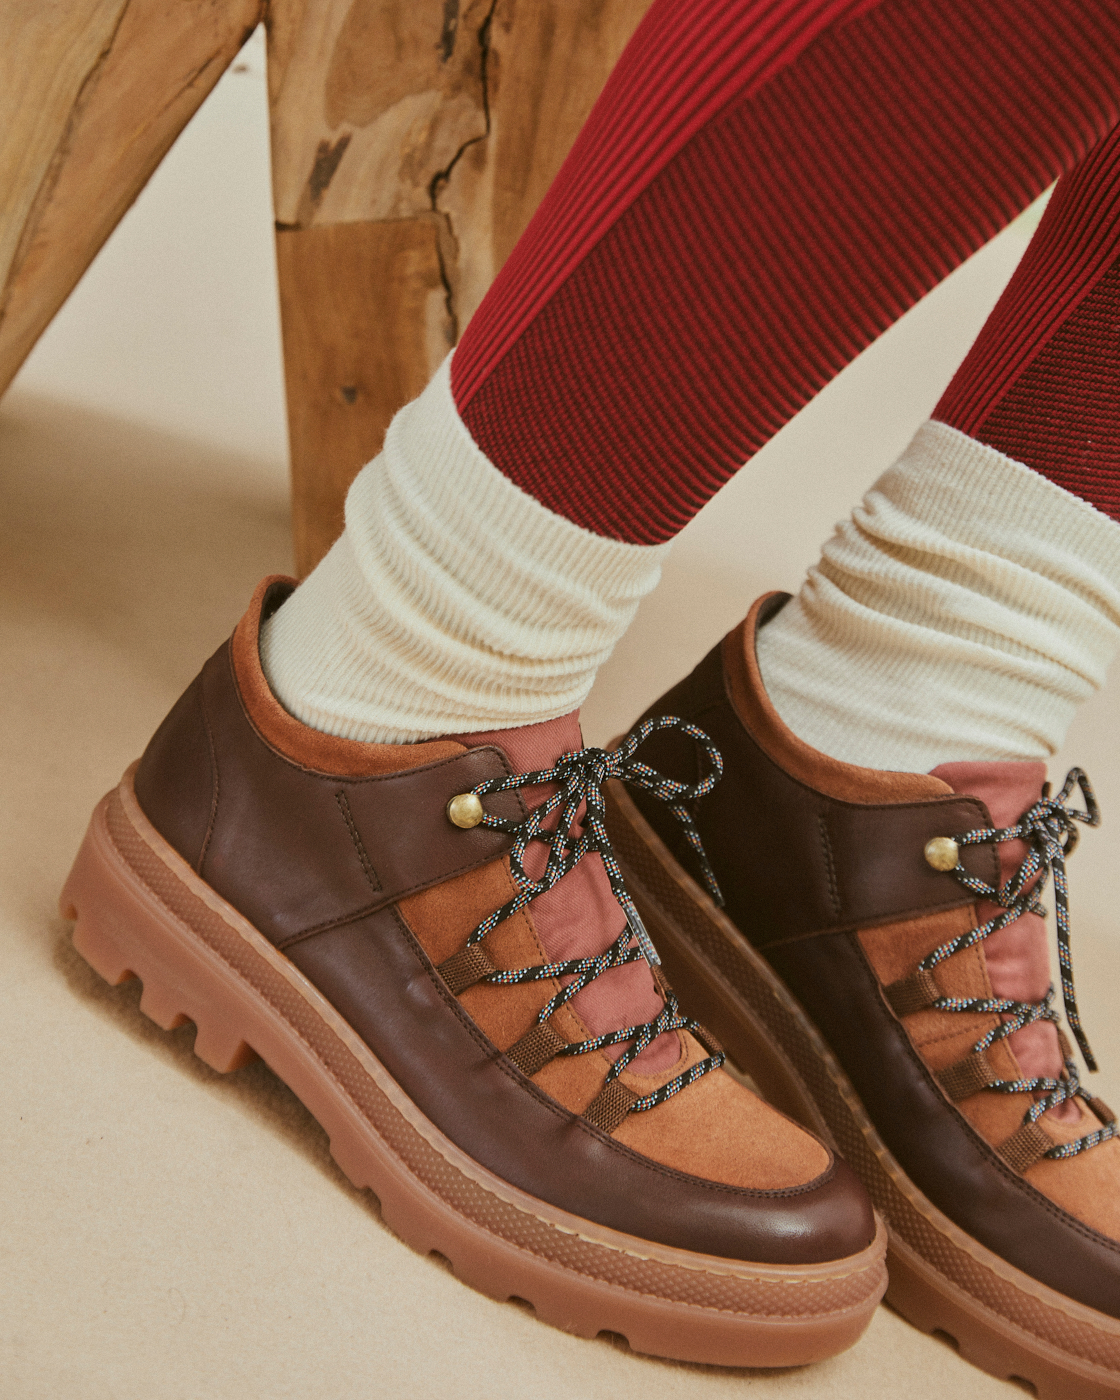 ABRA#INSPIRED BY MOUNTAIN SHOES